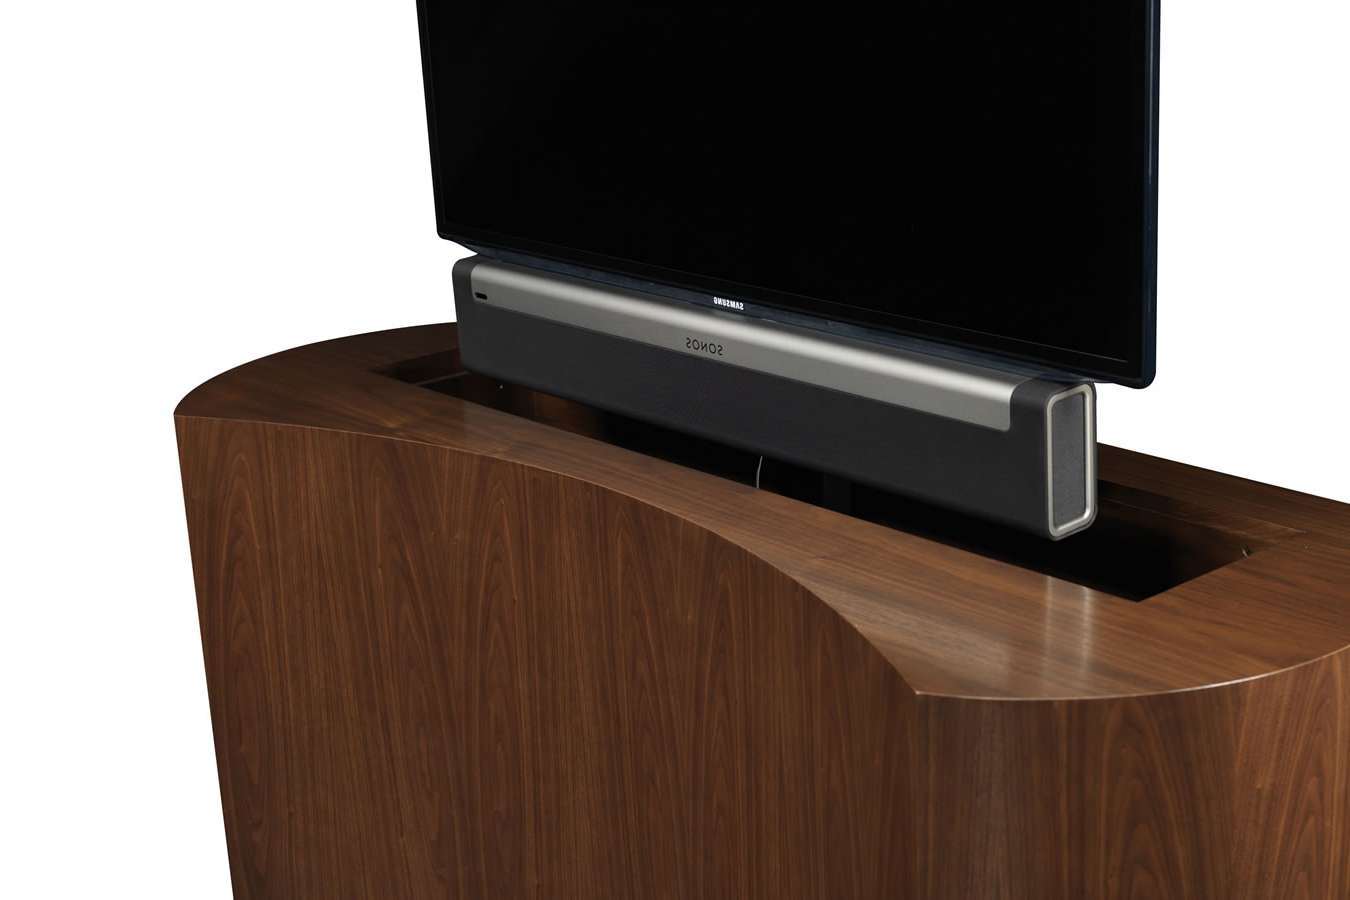 Sonos Sound Bar Playbar With Tv Lift Cabinet – Cabinet Tronix In Sonos Tv Stands (View 12 of 15)